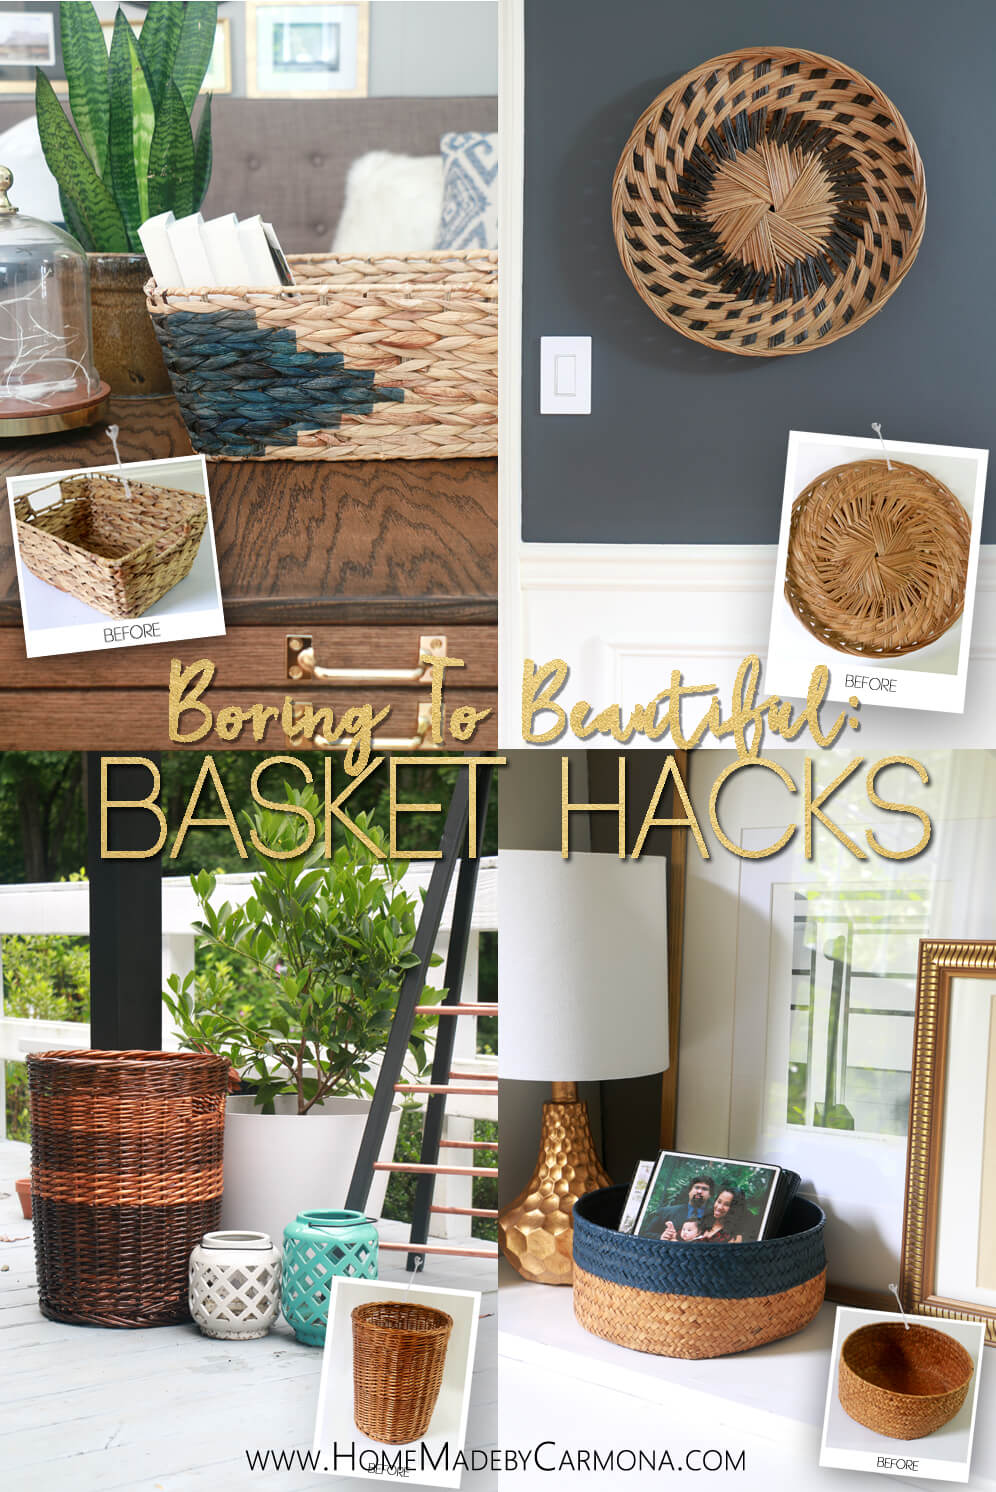 Boring To Beautiful - Awesome Basket Hacks